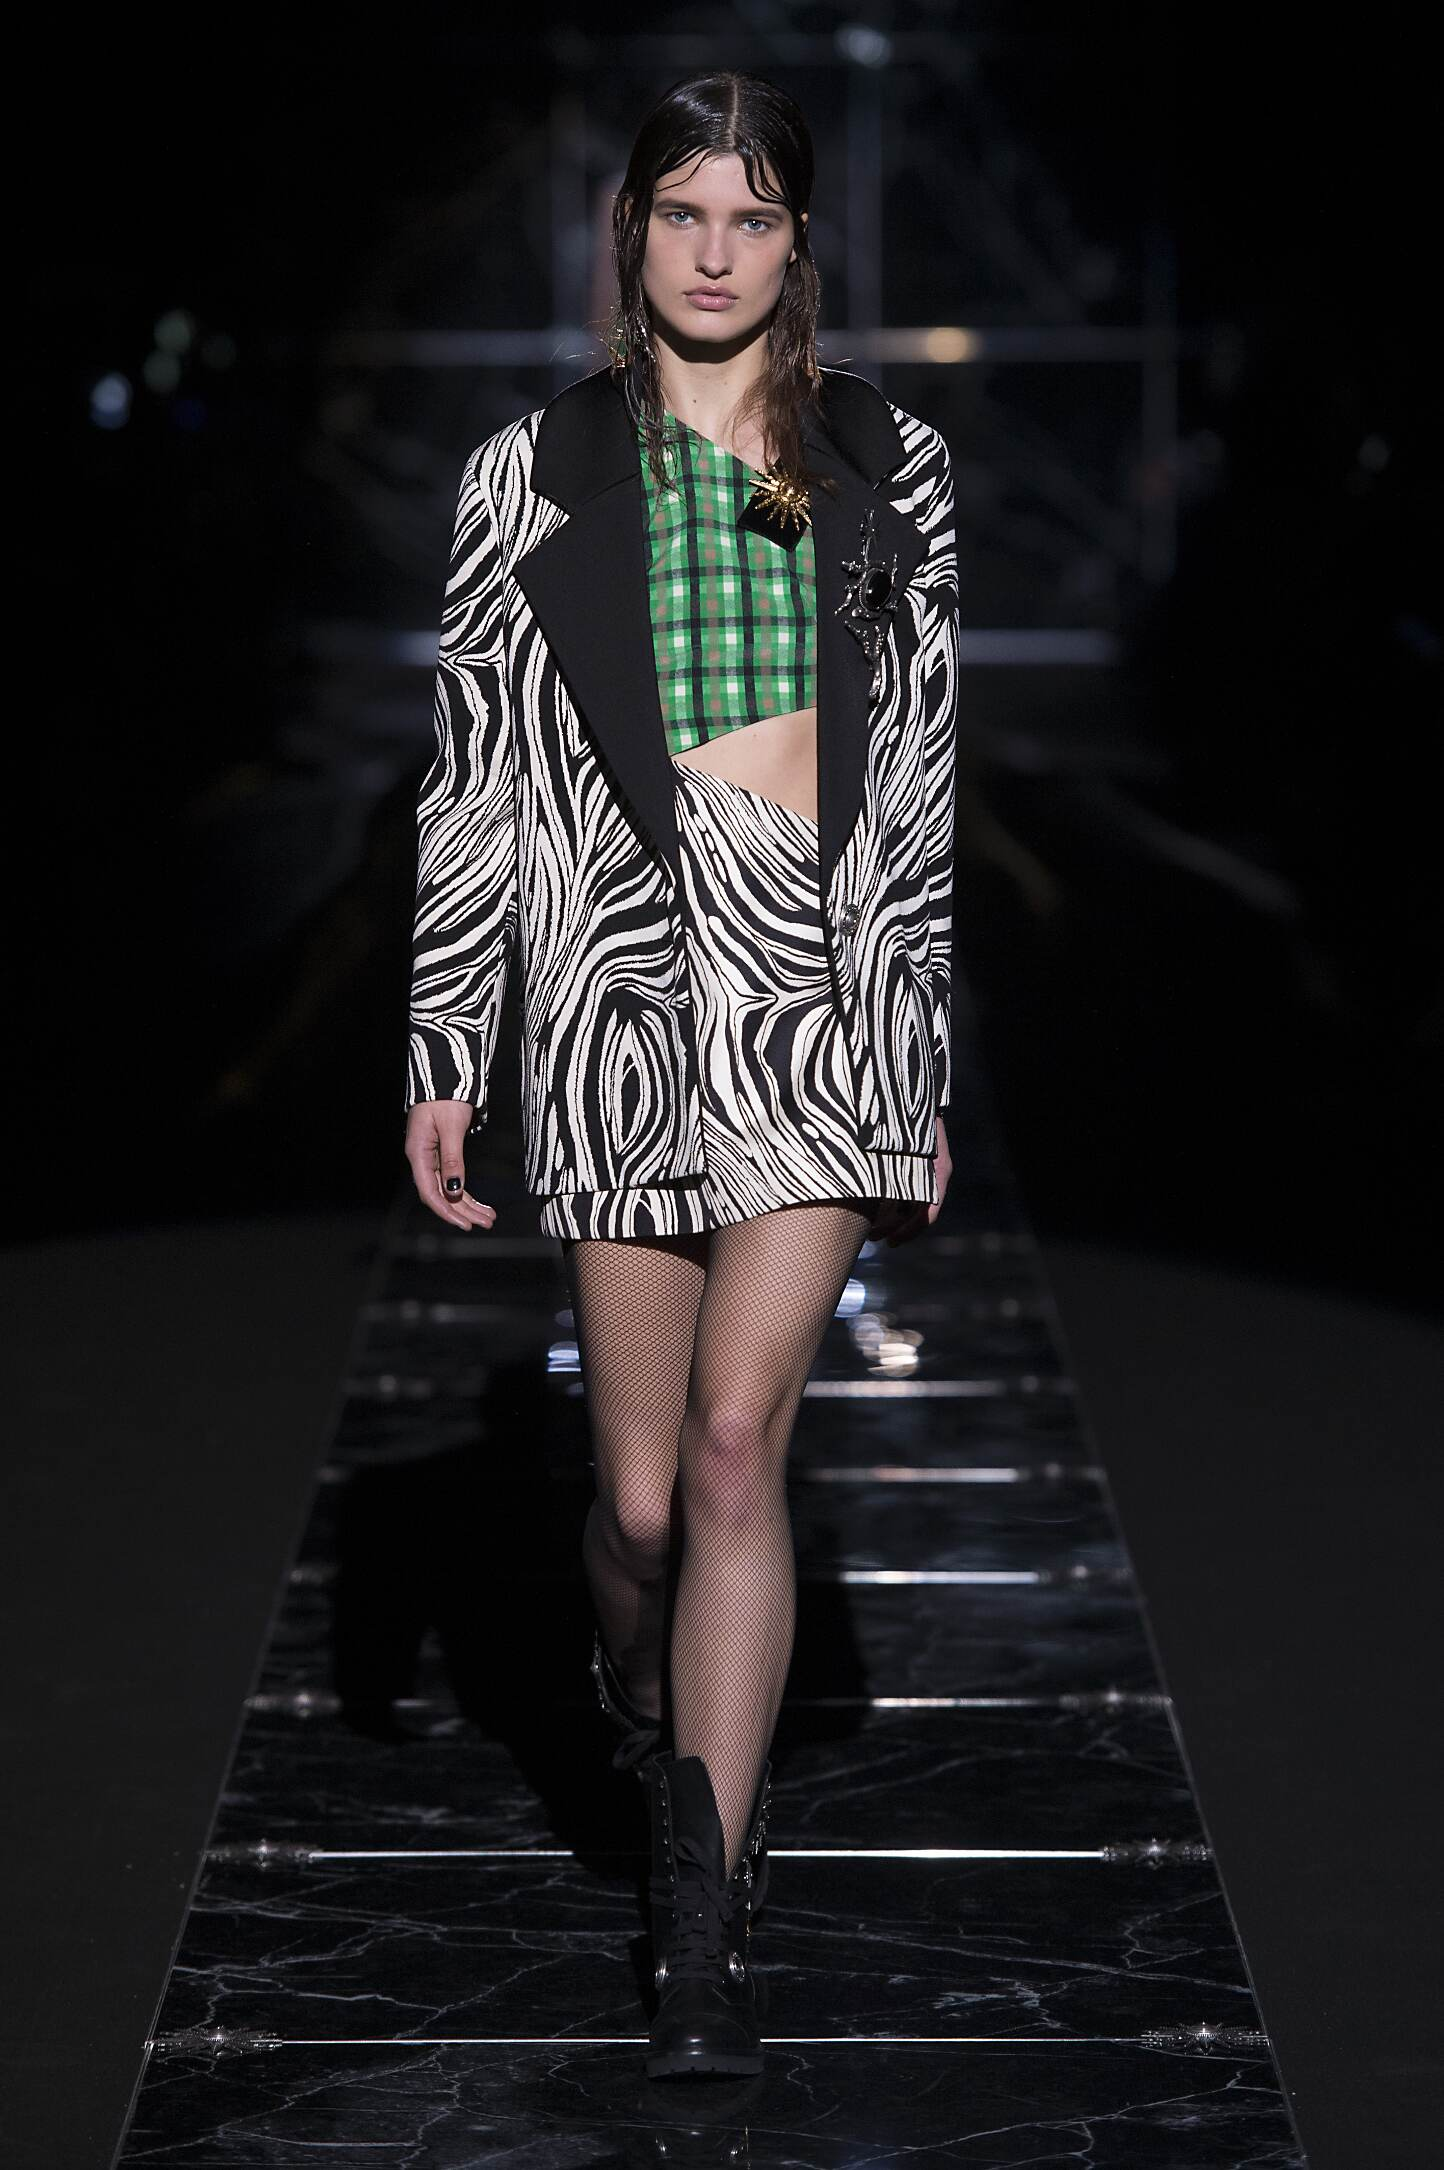 Winter 2015 Fashion Show Fausto Puglisi Collection